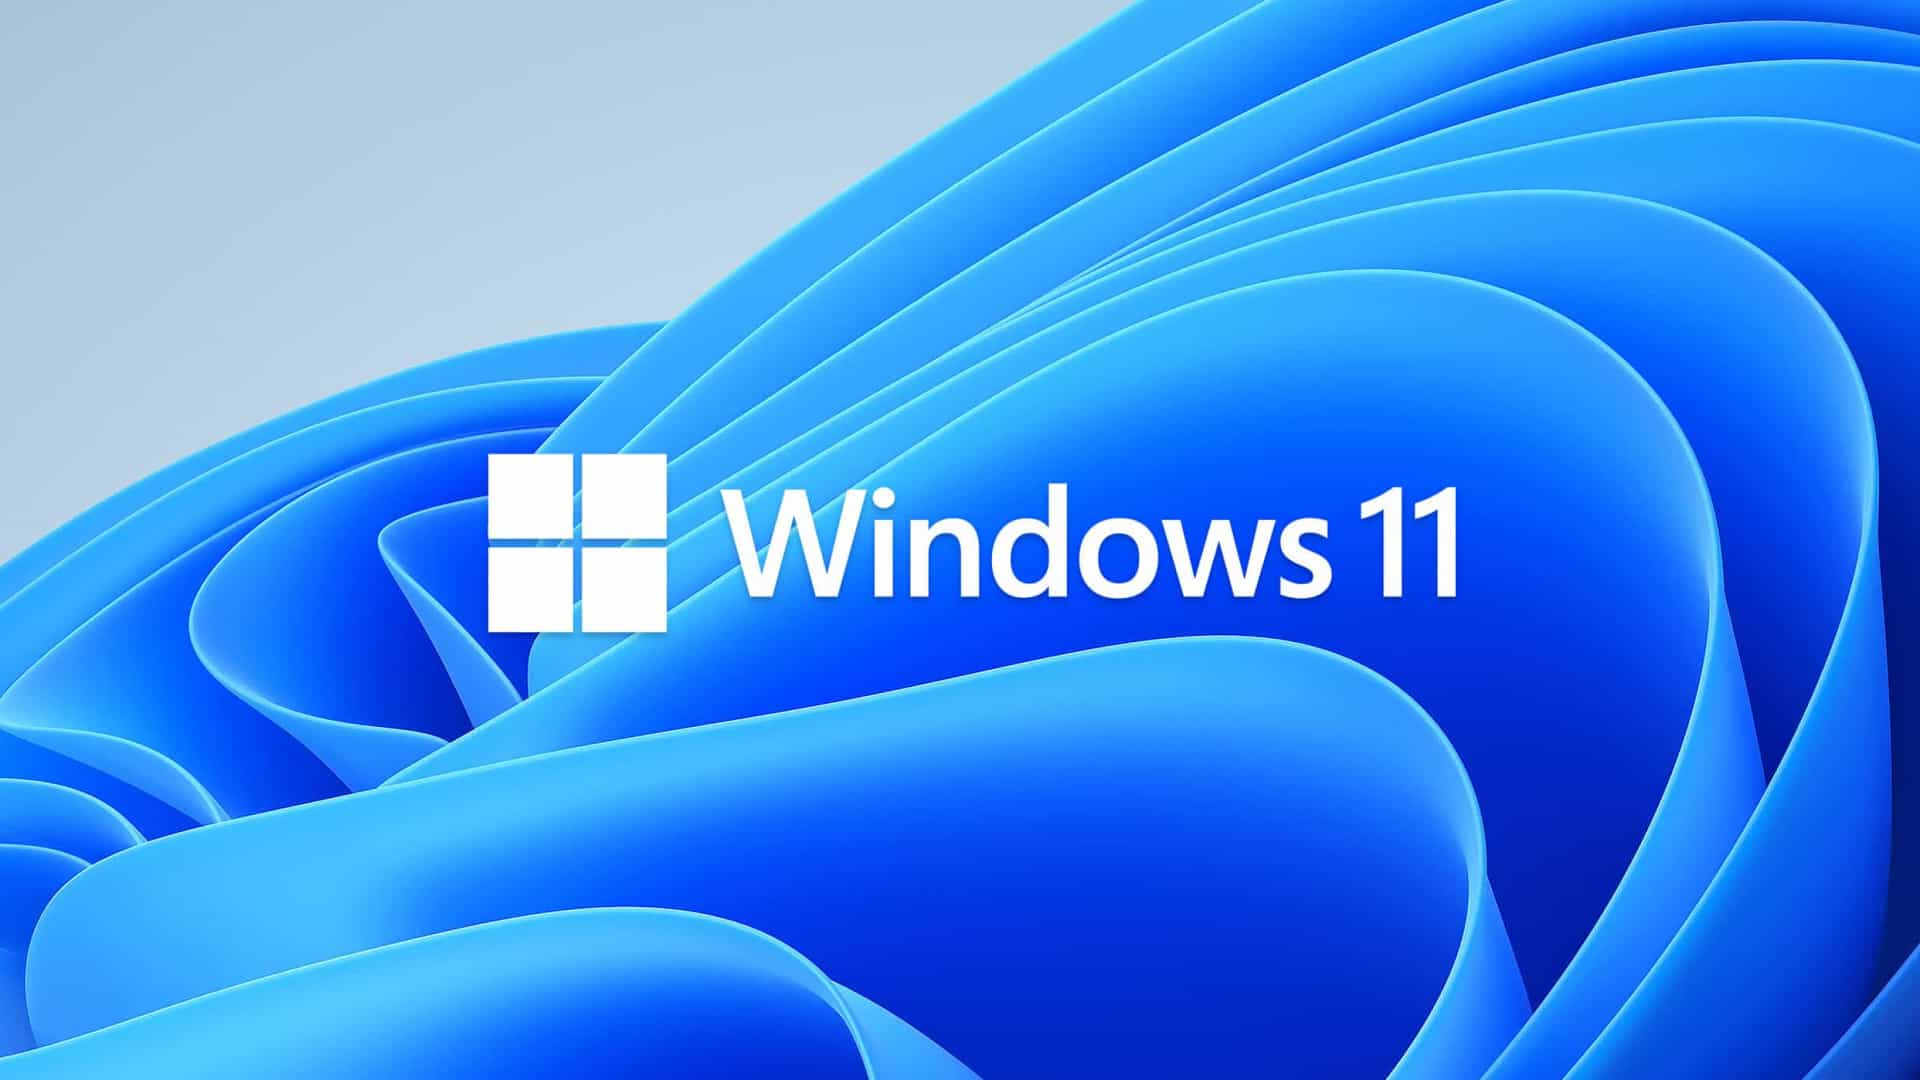 Microsoft will continue to charge fees on Windows 11 for video game sales